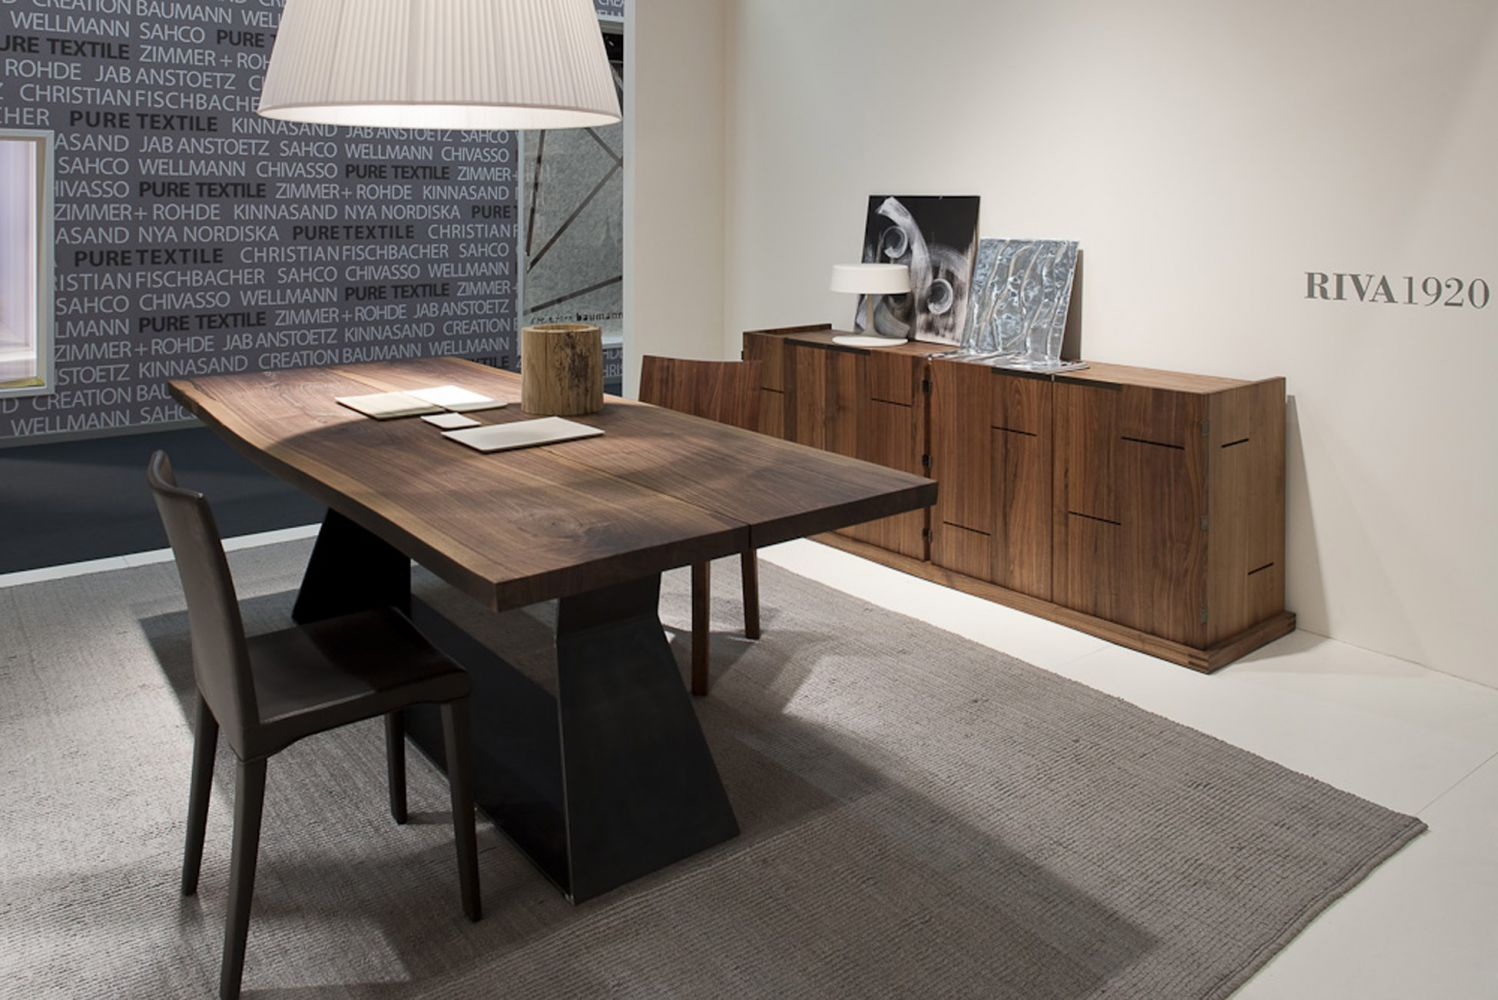 Dining Table With Metal Support Bedrock Plank C Riva 1920